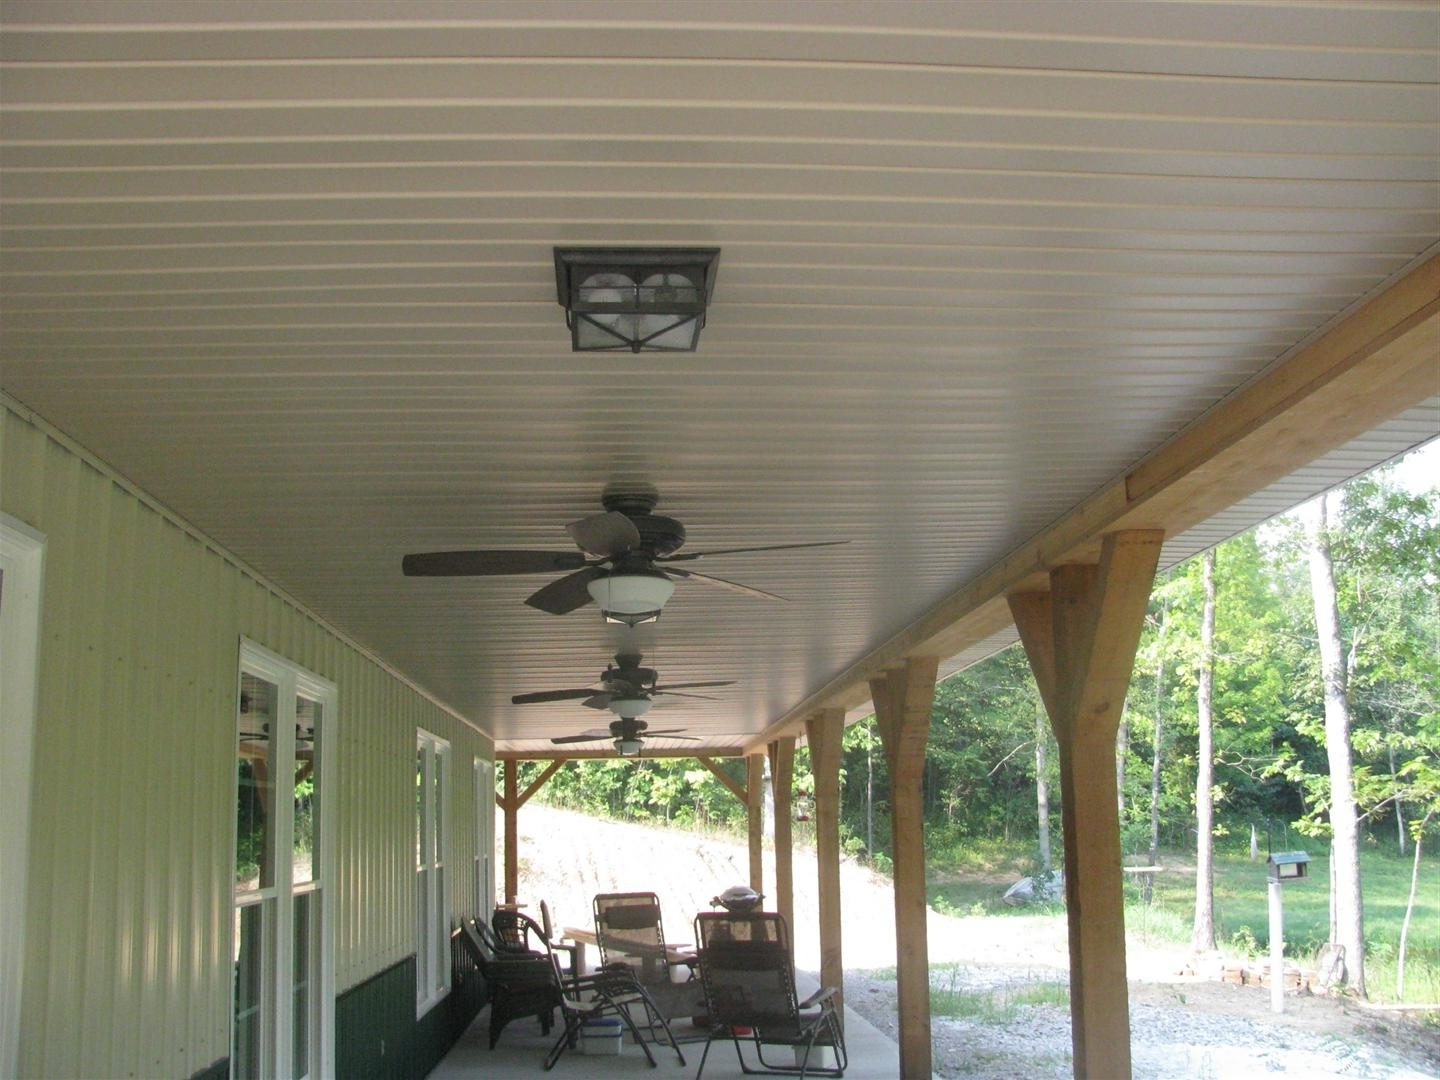 Outdoor Front Porch Ceiling Lights Within Best And Newest Outdoor Front Porch Ceiling Lights (View 4 of 20)